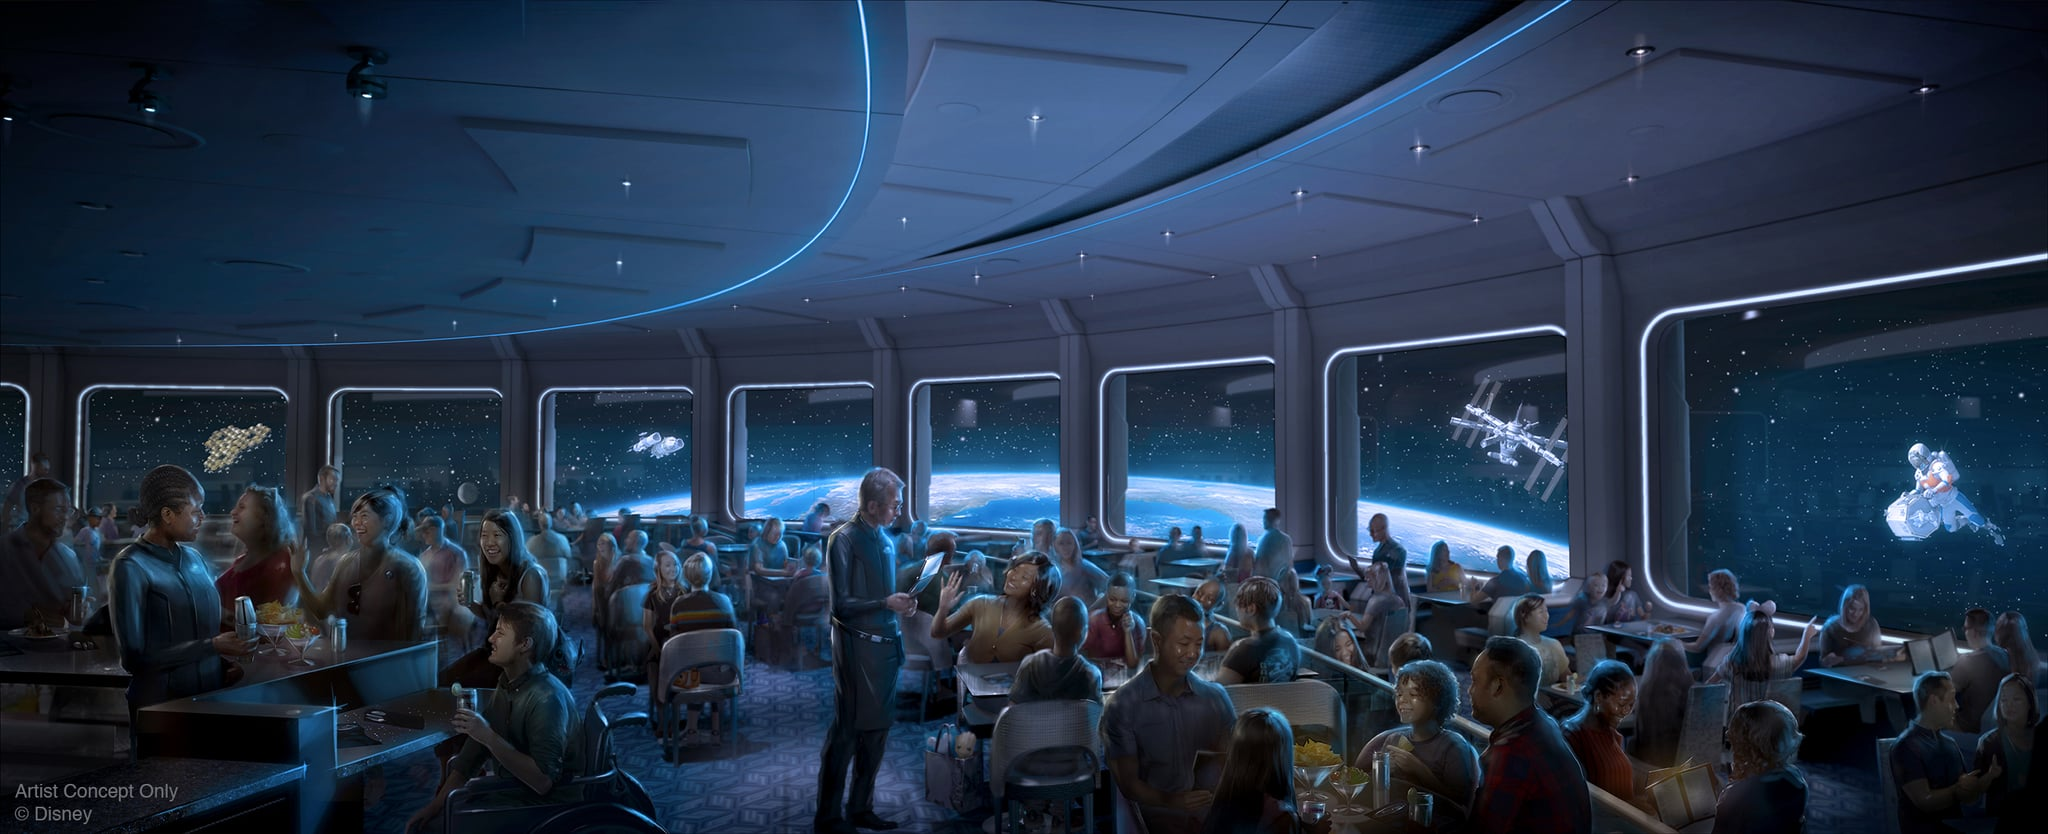 "Epcot's Space-Themed Restaurant Is Opening Soon, and You Have to Be ""Shot Into Orbit"" to Get There"